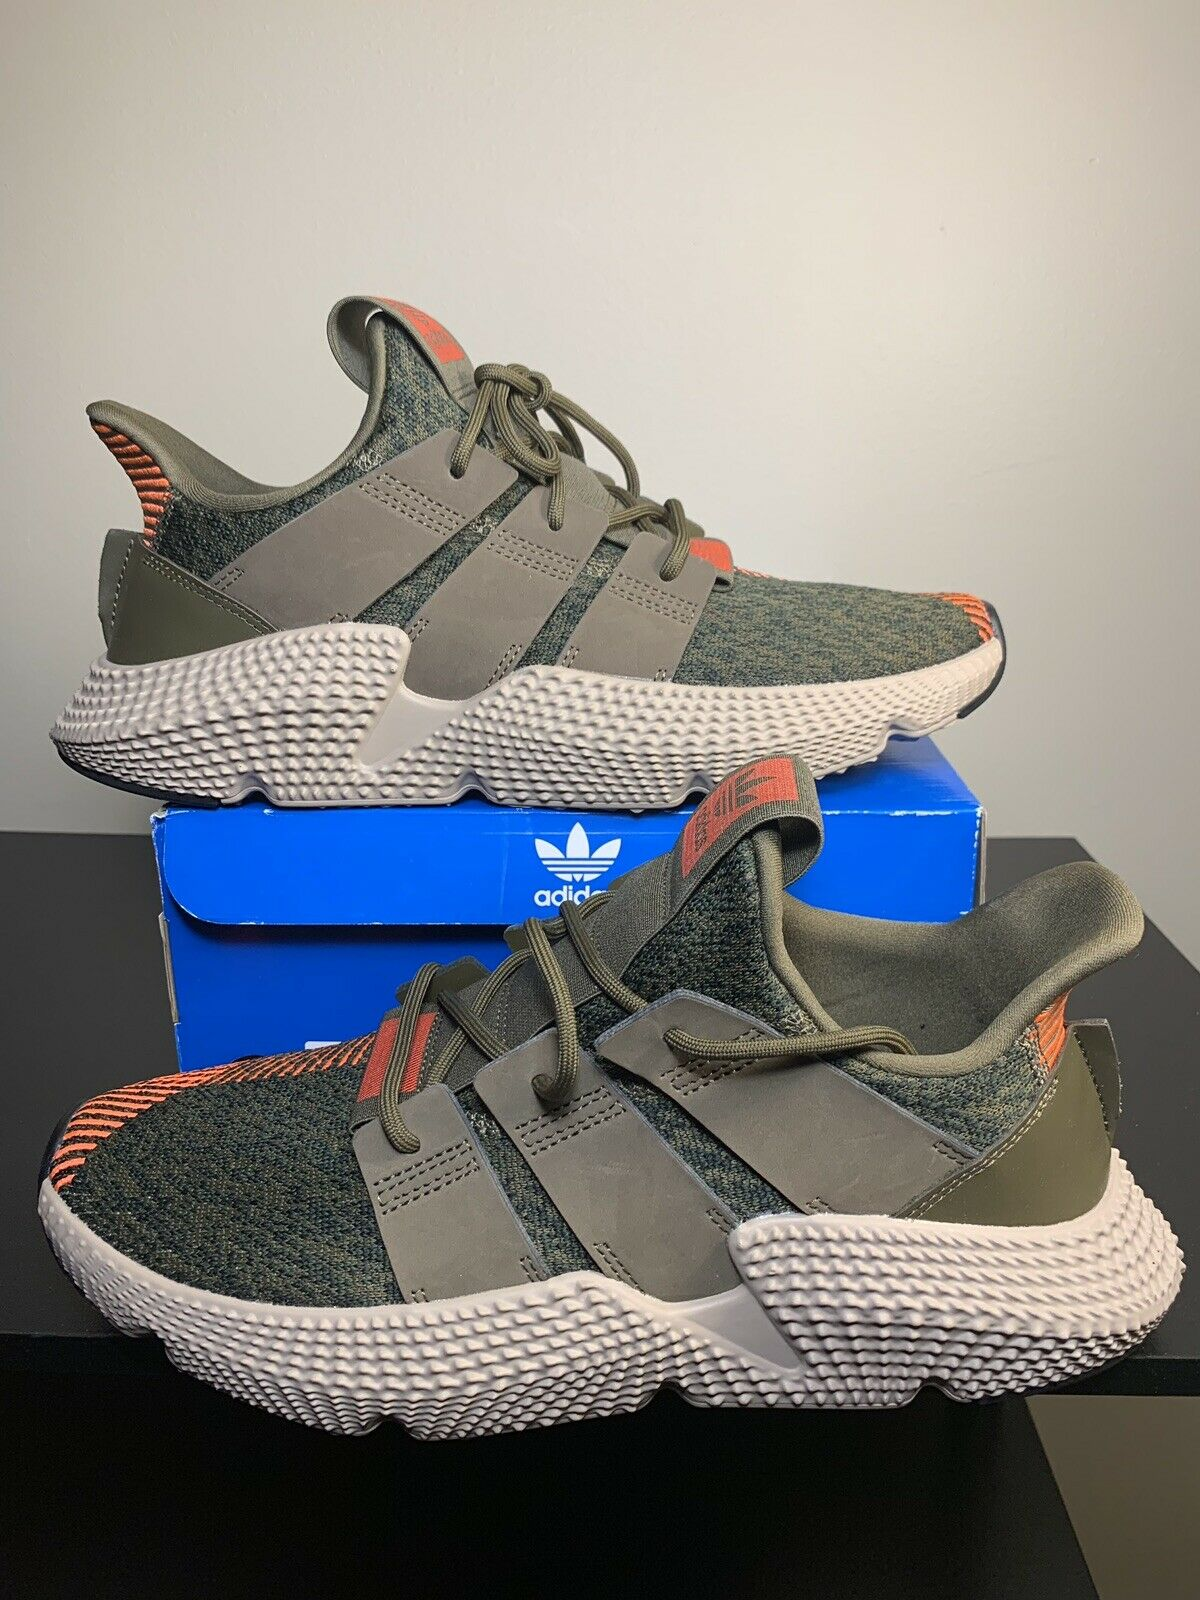 Adidas Prophere 'Trace Olive' CQ2127 Size 9 OG All